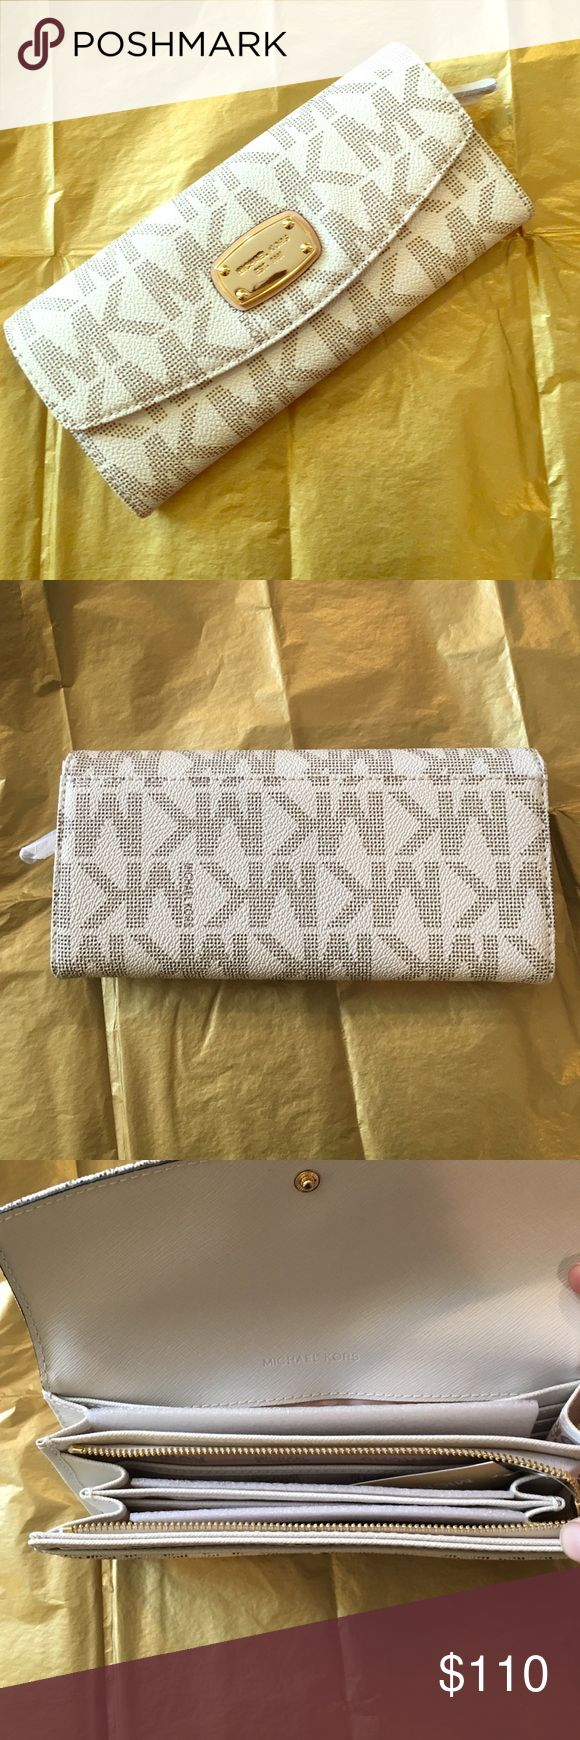 NWT 🔥Michael KORS JETSET wallet In Vanilla 🌟Brand new with tags! JETSET Michael KORS Vanilla Slim Flap Wallet. Beautiful Wallet, classic look ❤️️❤️️Valentine's Day 🎁❤️️❤️️ Michael Kors Bags Wallets